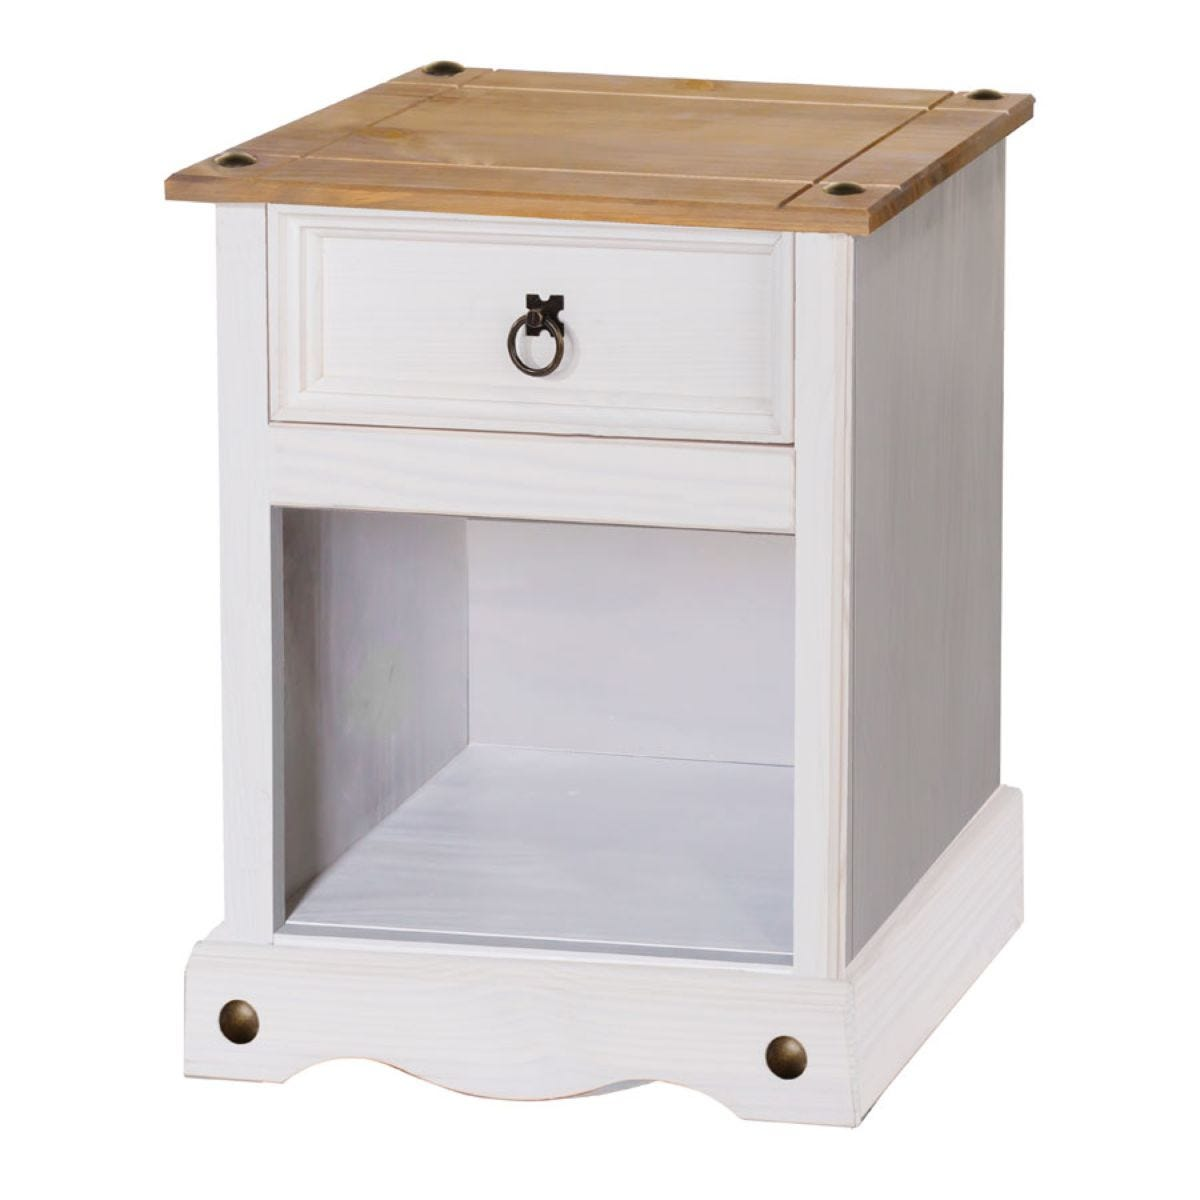 Halea 1-Drawer Bedside Cabinet - White